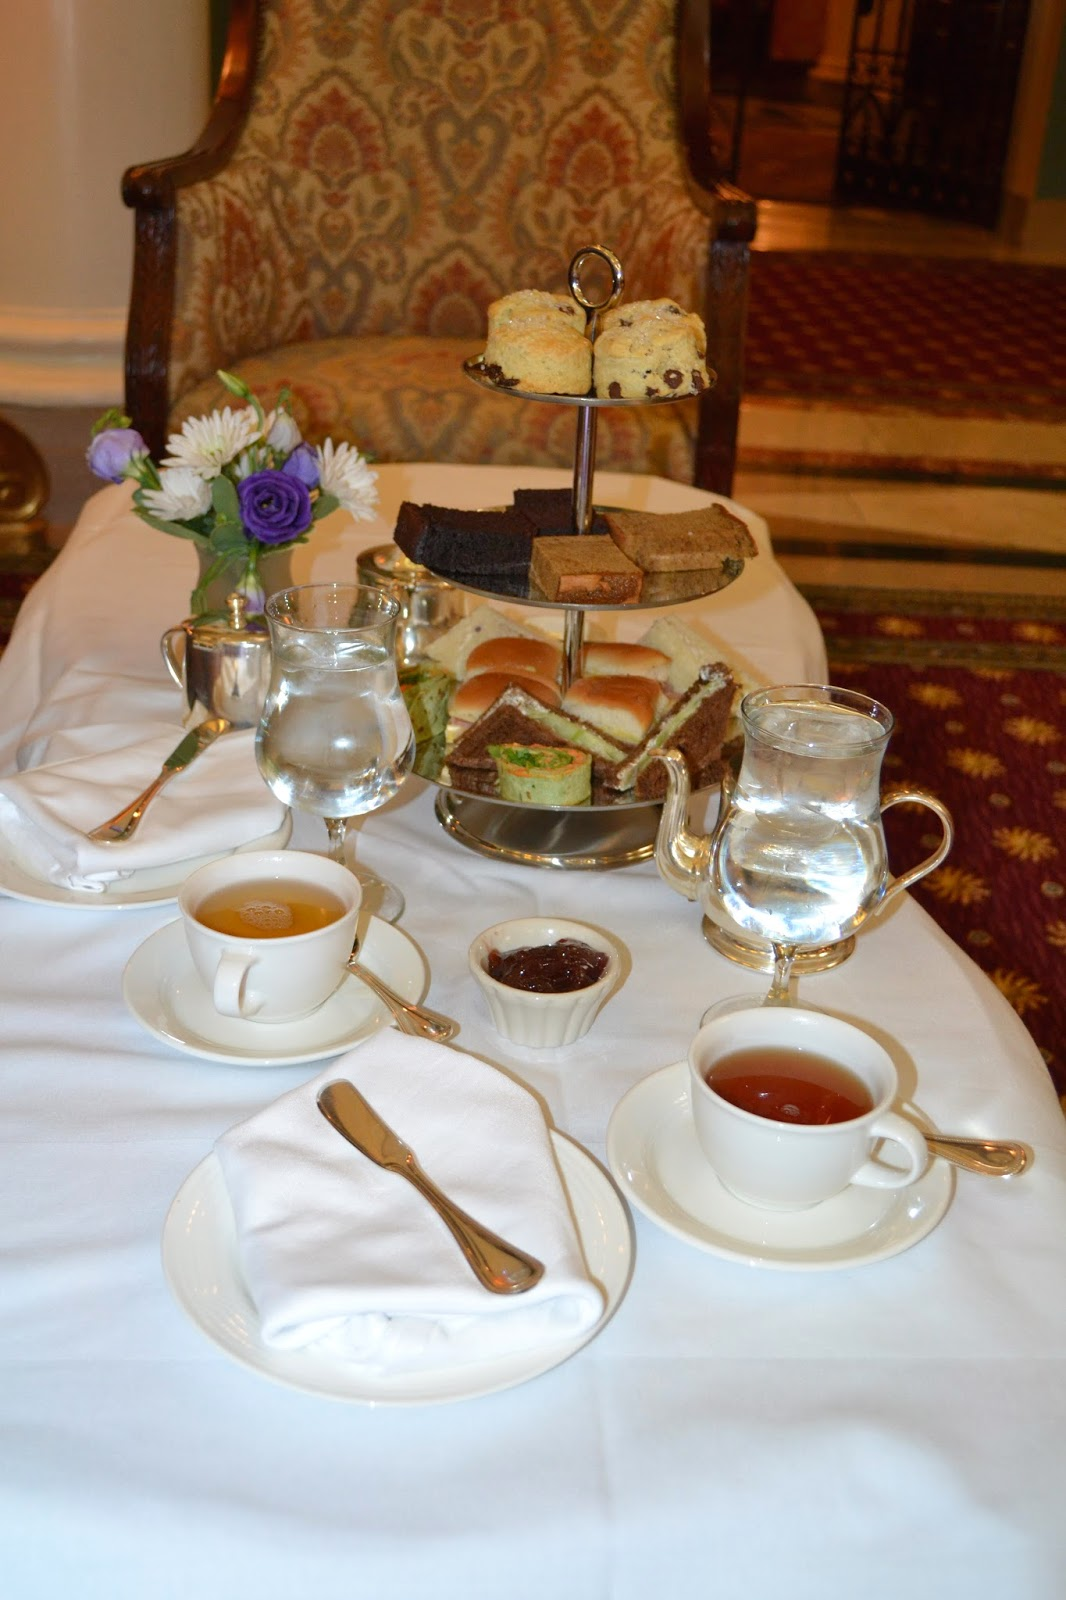 Afternoon Tea at the Jefferson Hotel